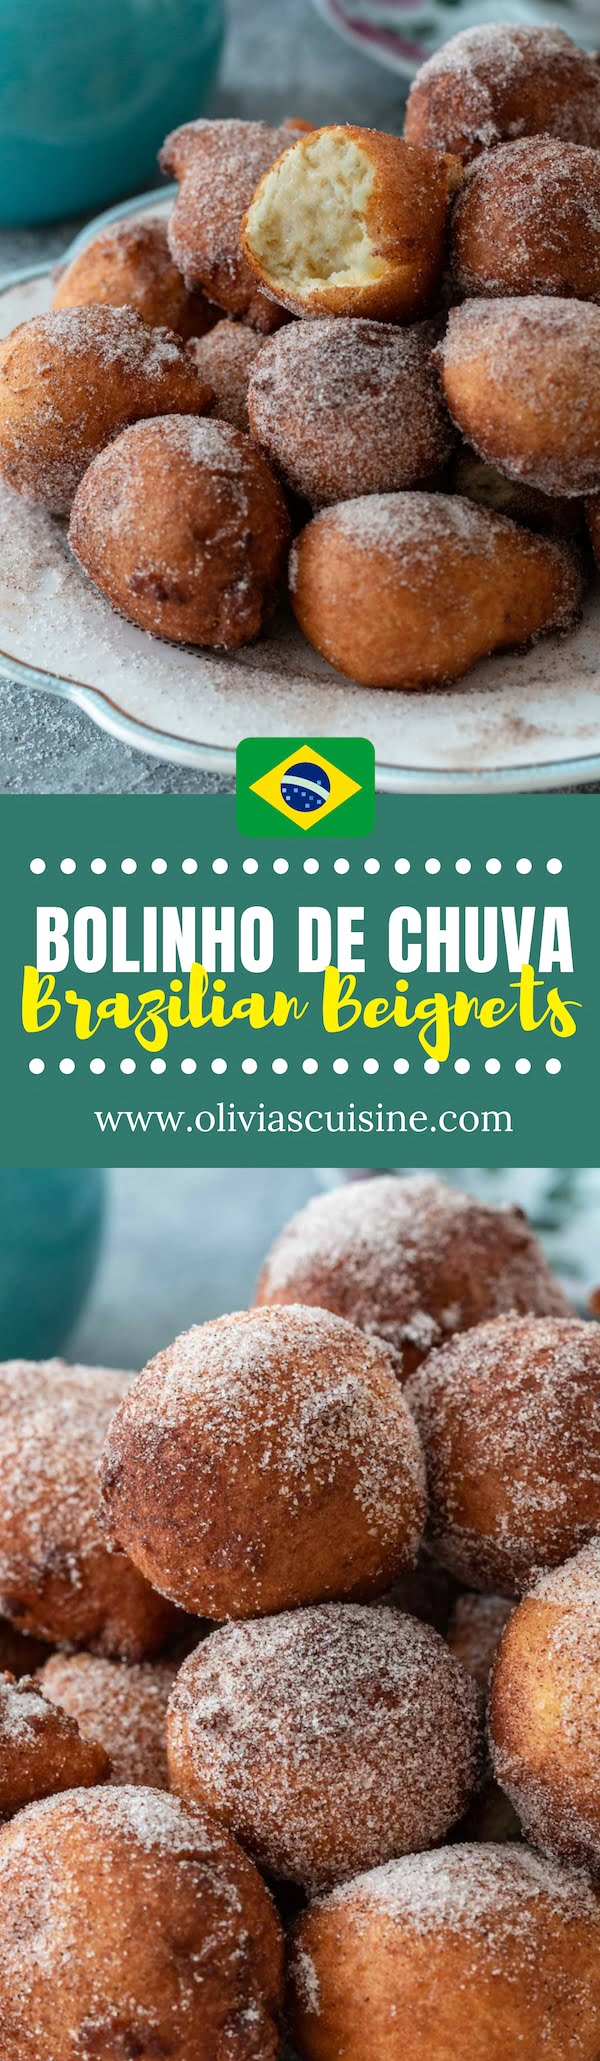 Bolinhos de Chuva (Brazilian Raindrop Beignets) | www.oliviascuisine.com | Bolinhos de Chuva are the Brazilian equivalent of Beignets: deep fried dough sprinkled with cinnamon and sugar. Named for their raindrop shape, they are impossible to resist! (Recipe and food photography by @oliviascuisine.) #beignets #brazilianfood #snacks #sweettreats